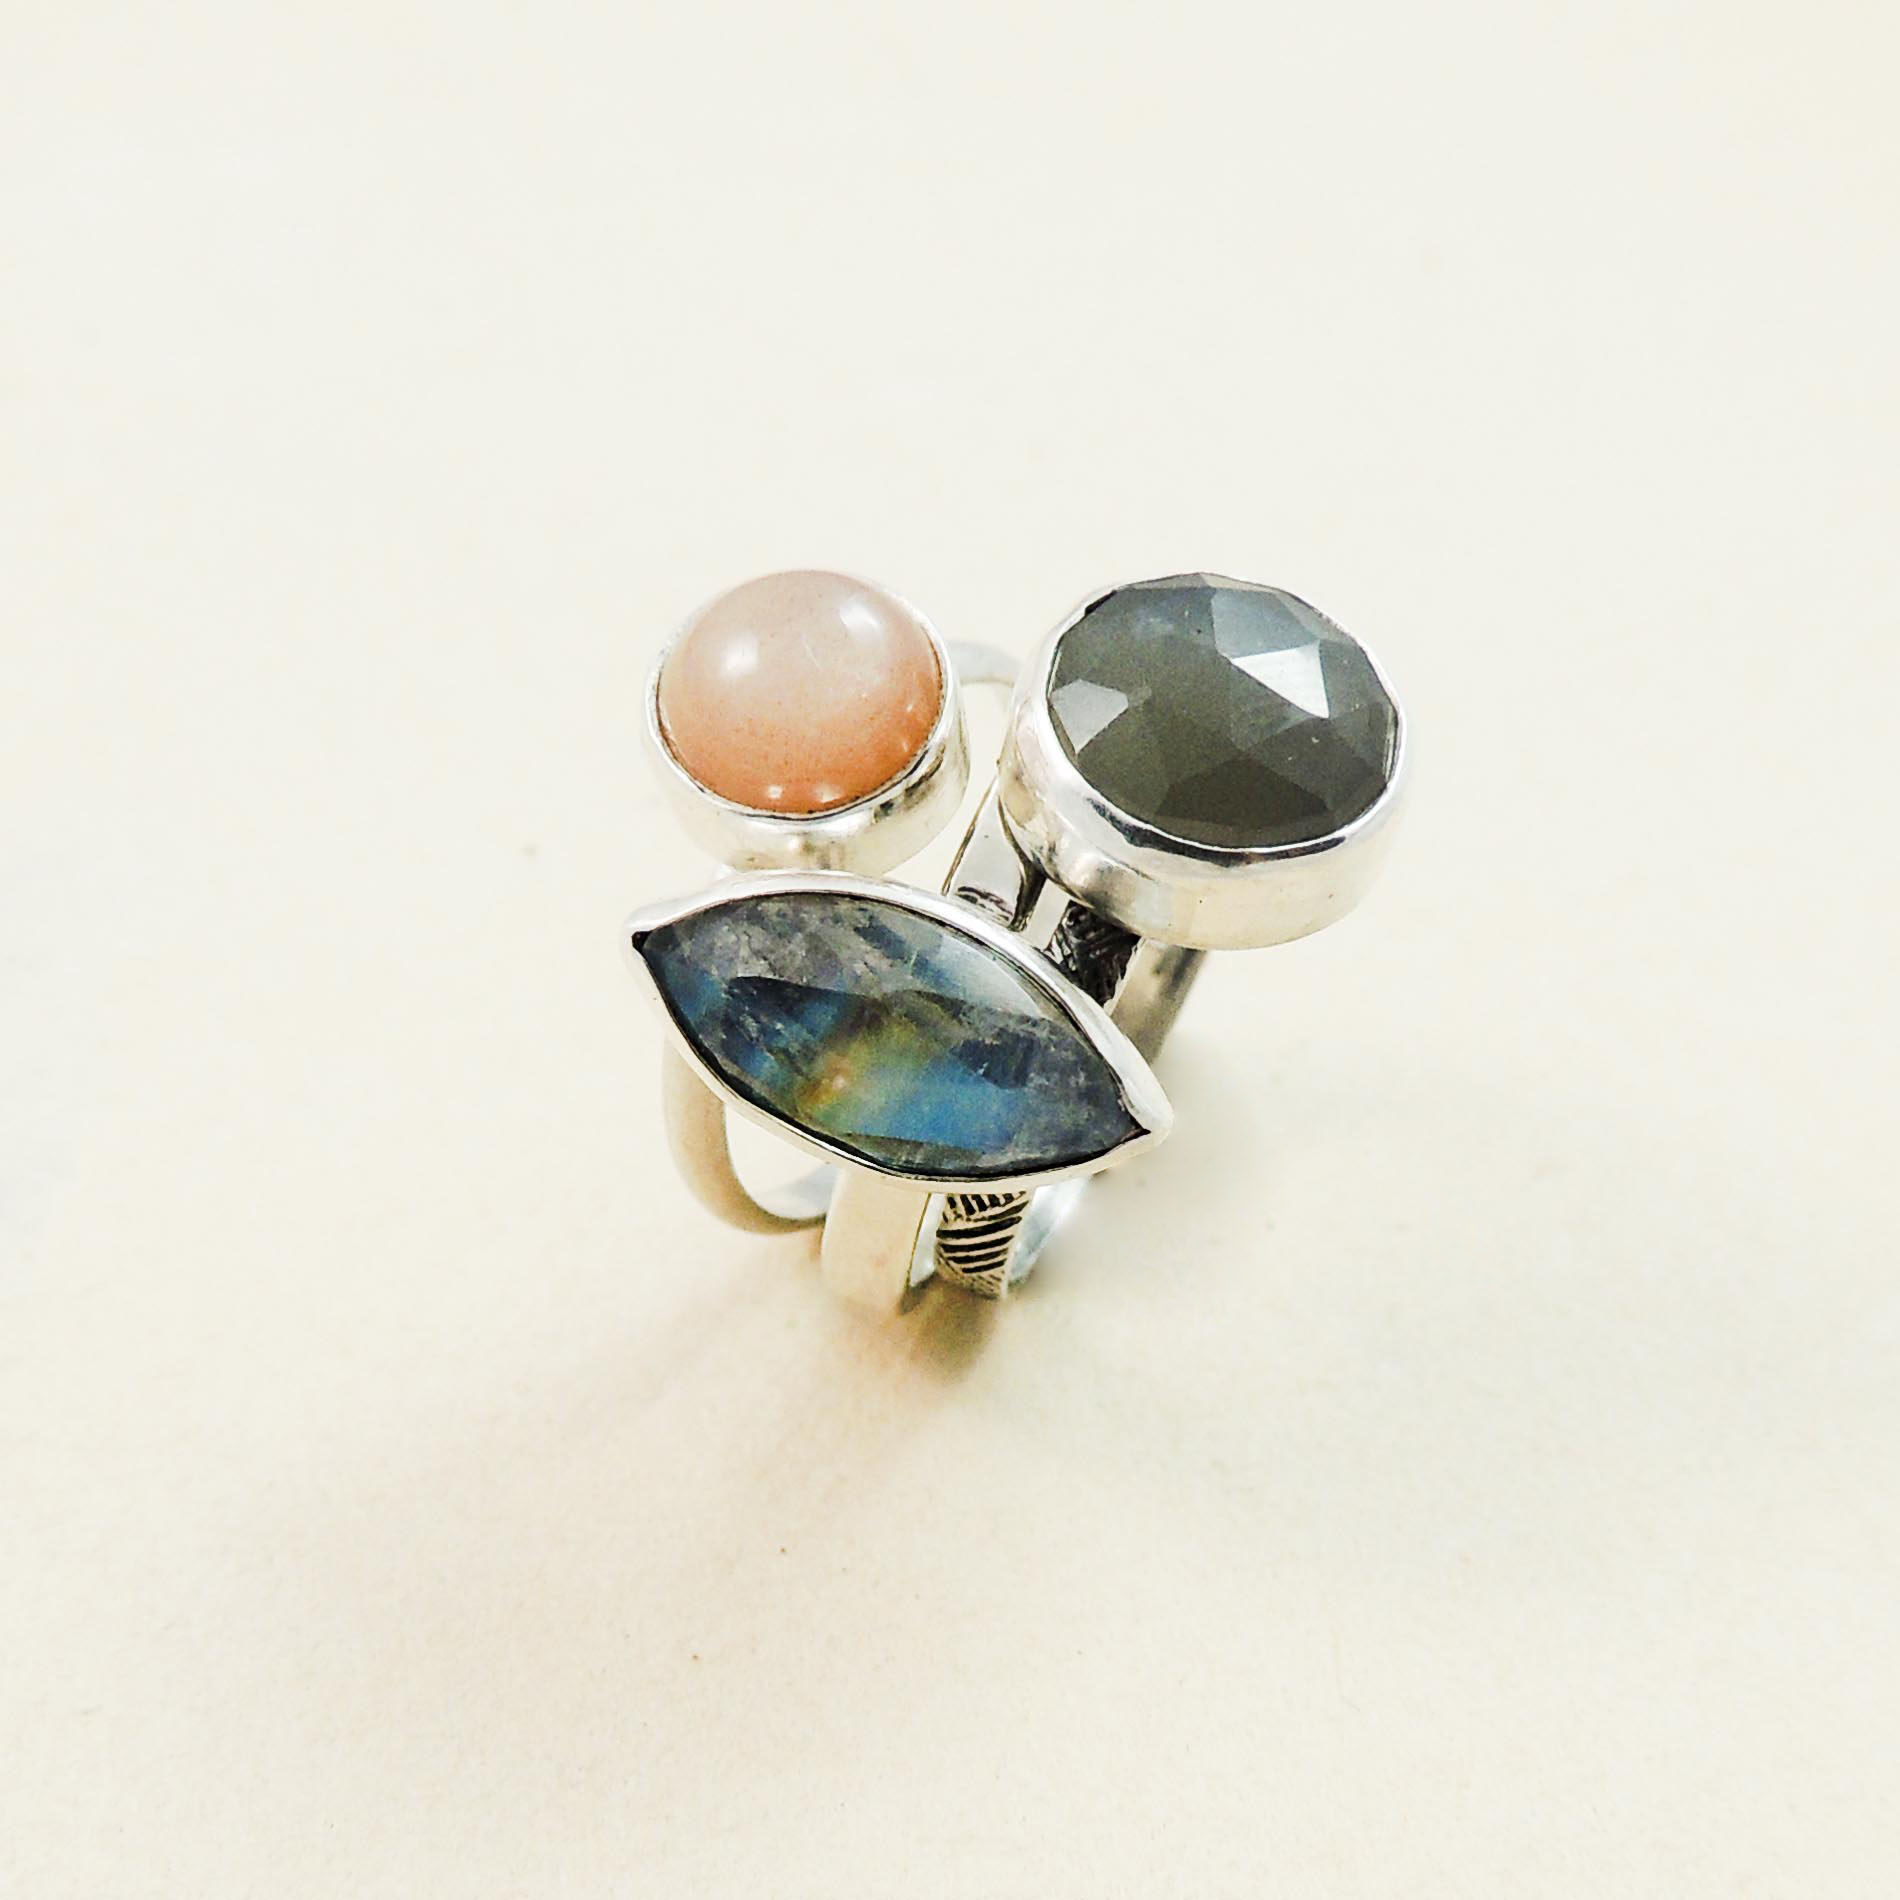 Peach, gray and rainbow moonstone, sterling silver- stacking rings.